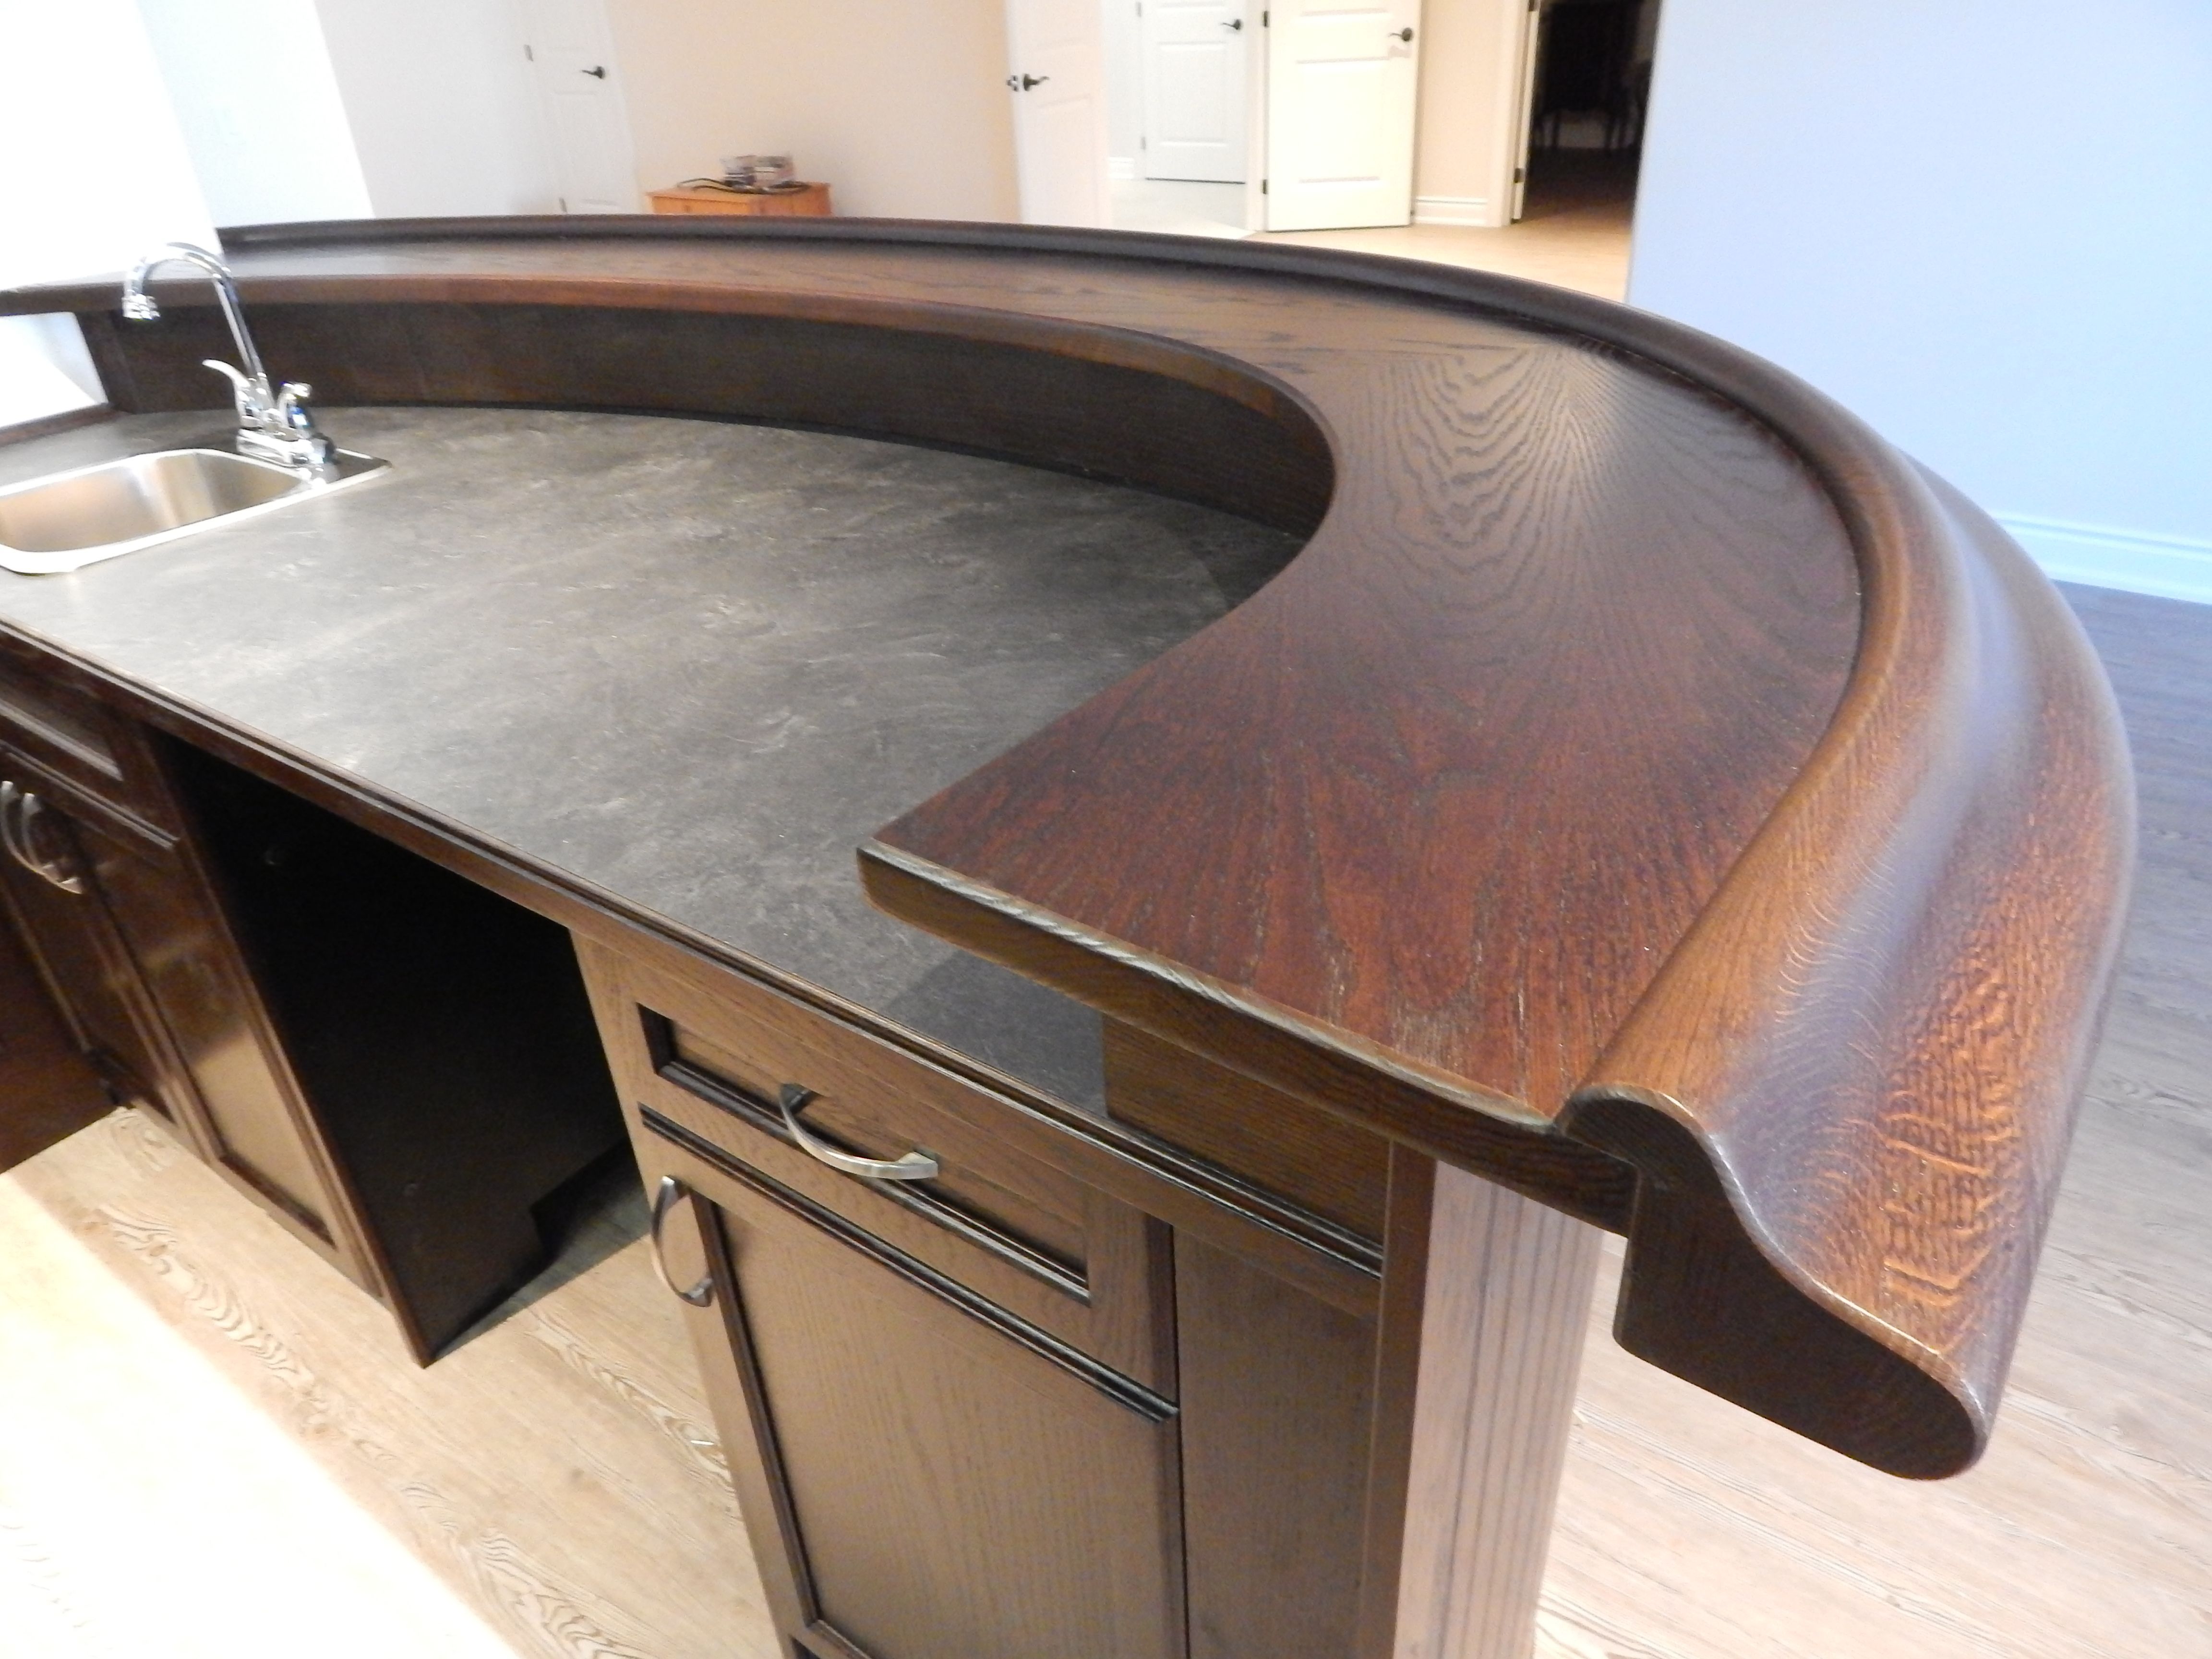 Solid Oak Bar Top And Bar Rail With Laminate Counter Top